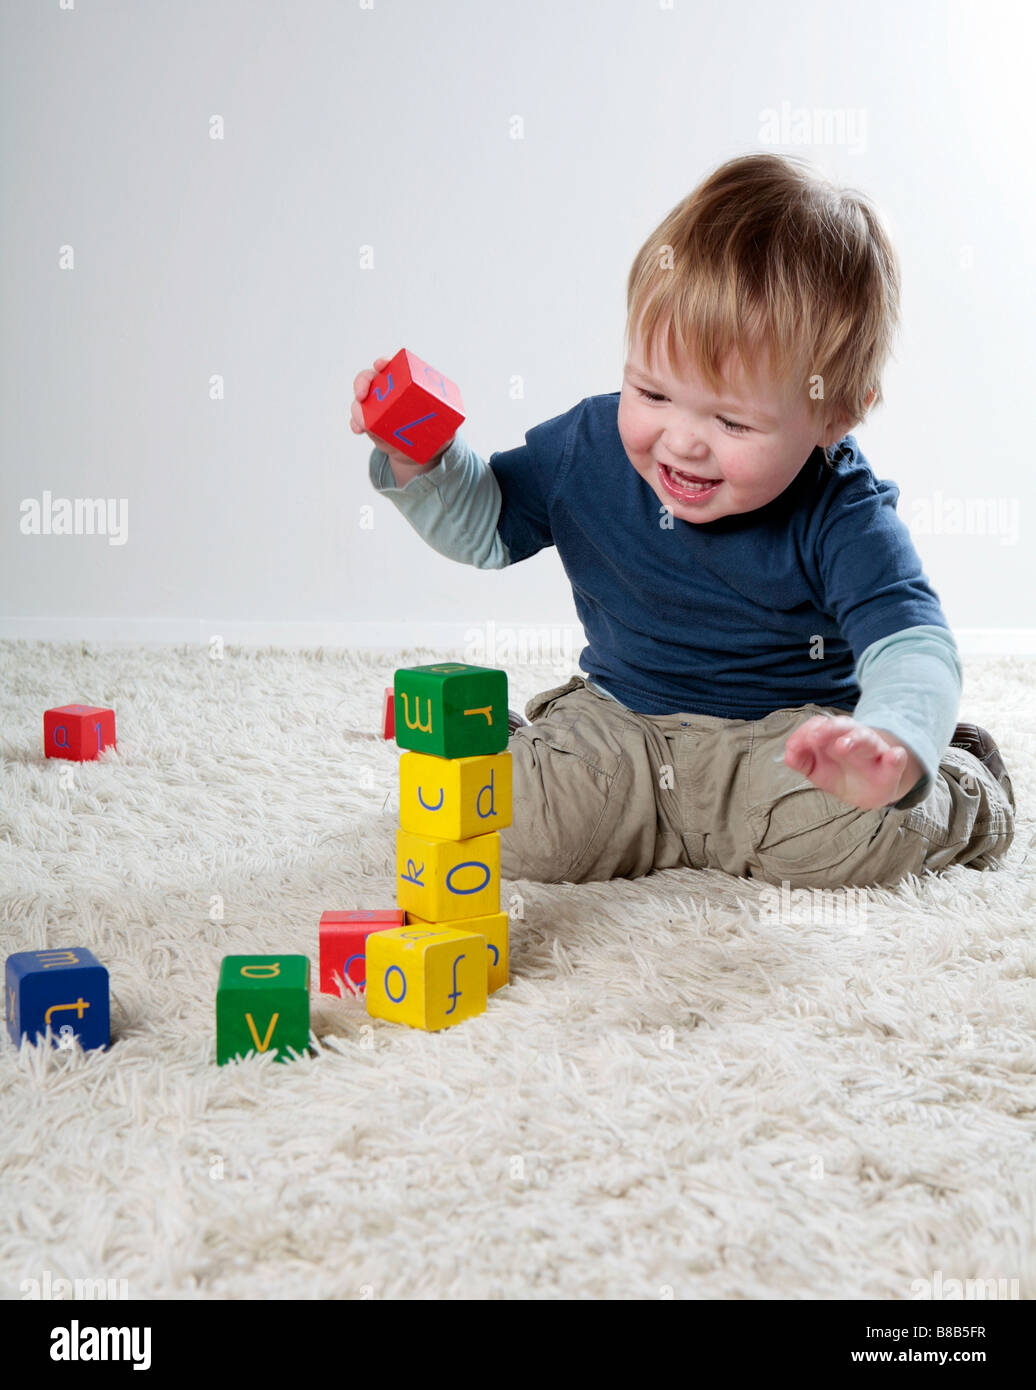 Baby boy playing with building blocks (with signed model release - available for commercial use) - Stock Image